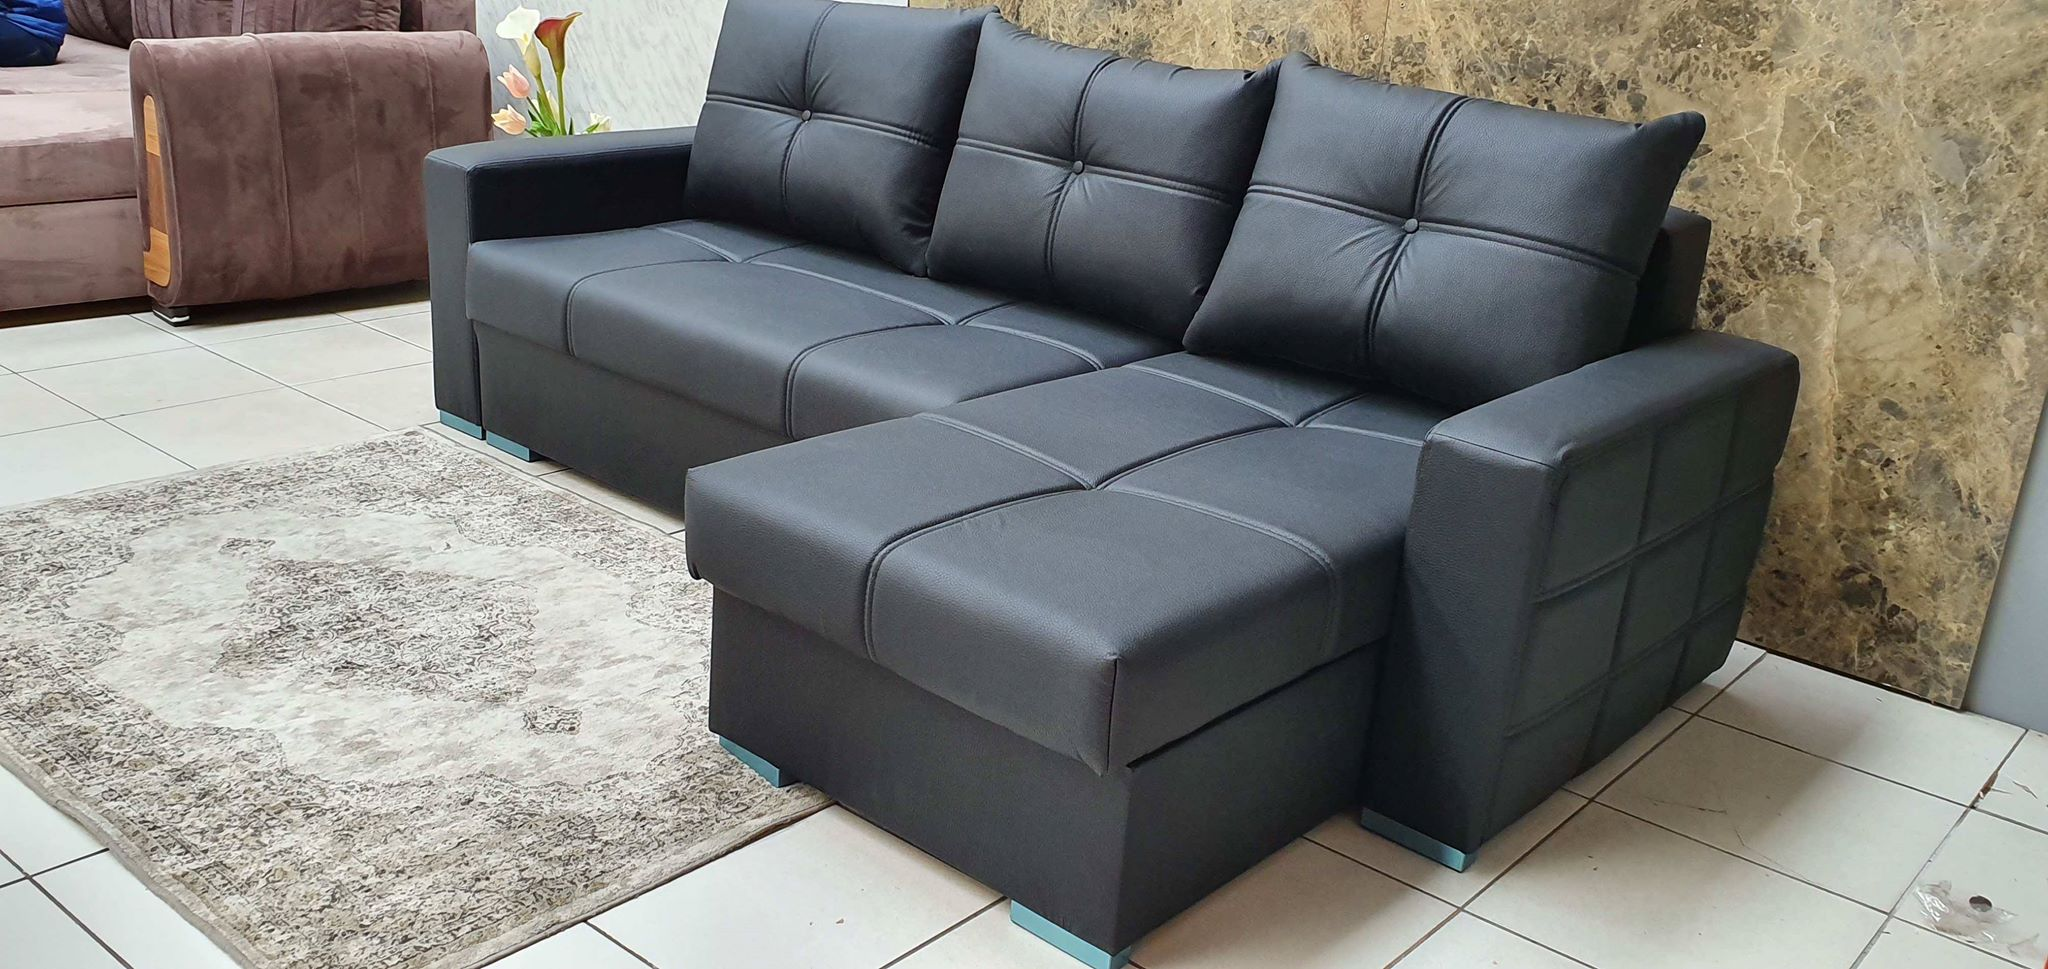 Picture of: London Black Leather Corner Sofa Bed Furniture Valley Home